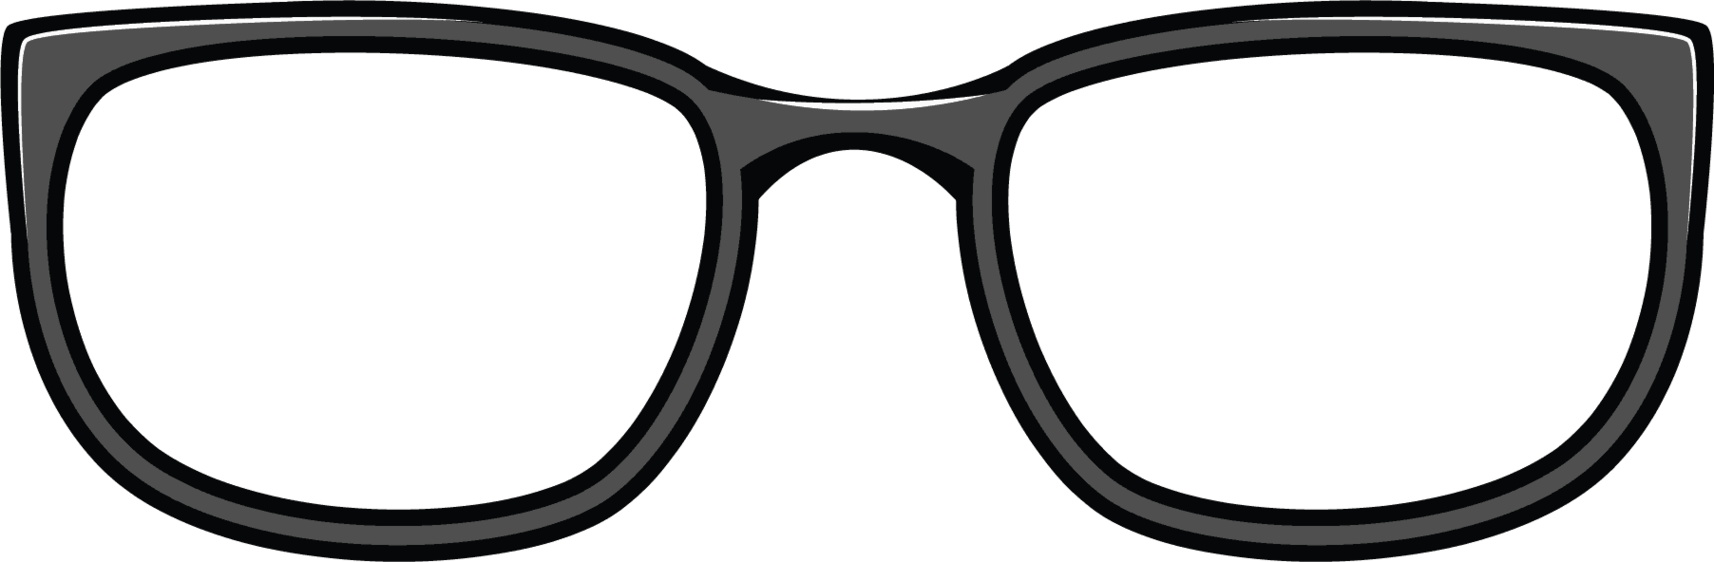 1714x562 Round Glasses Clipart Free To Use Clip Art Resource